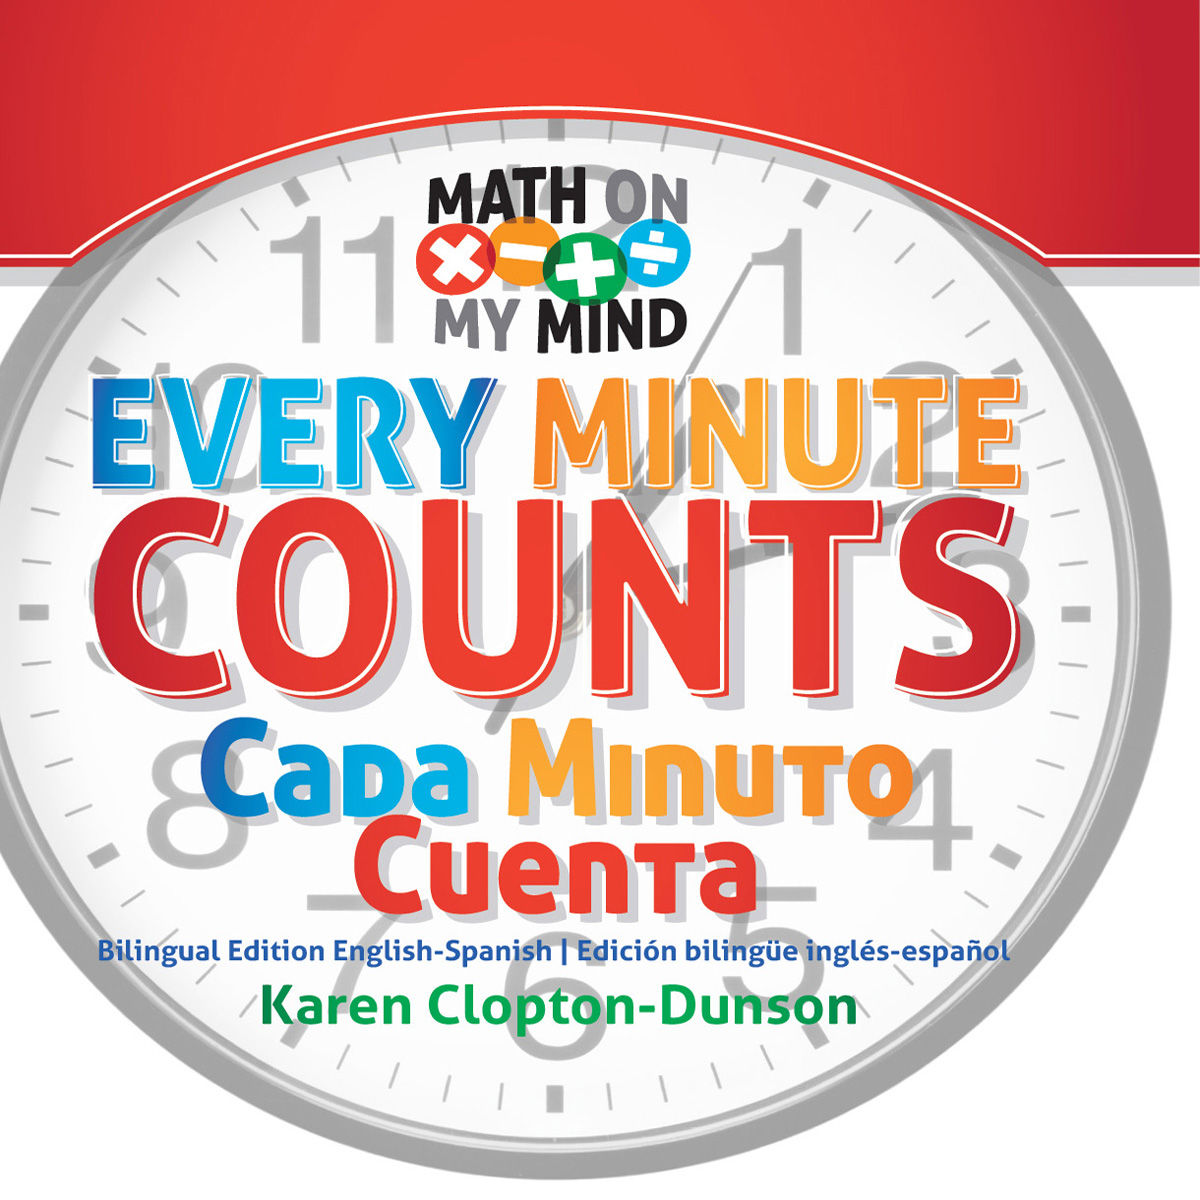 Every Minute Counts / Cada Minuto Cuenta By Karen Clopton-Dunson